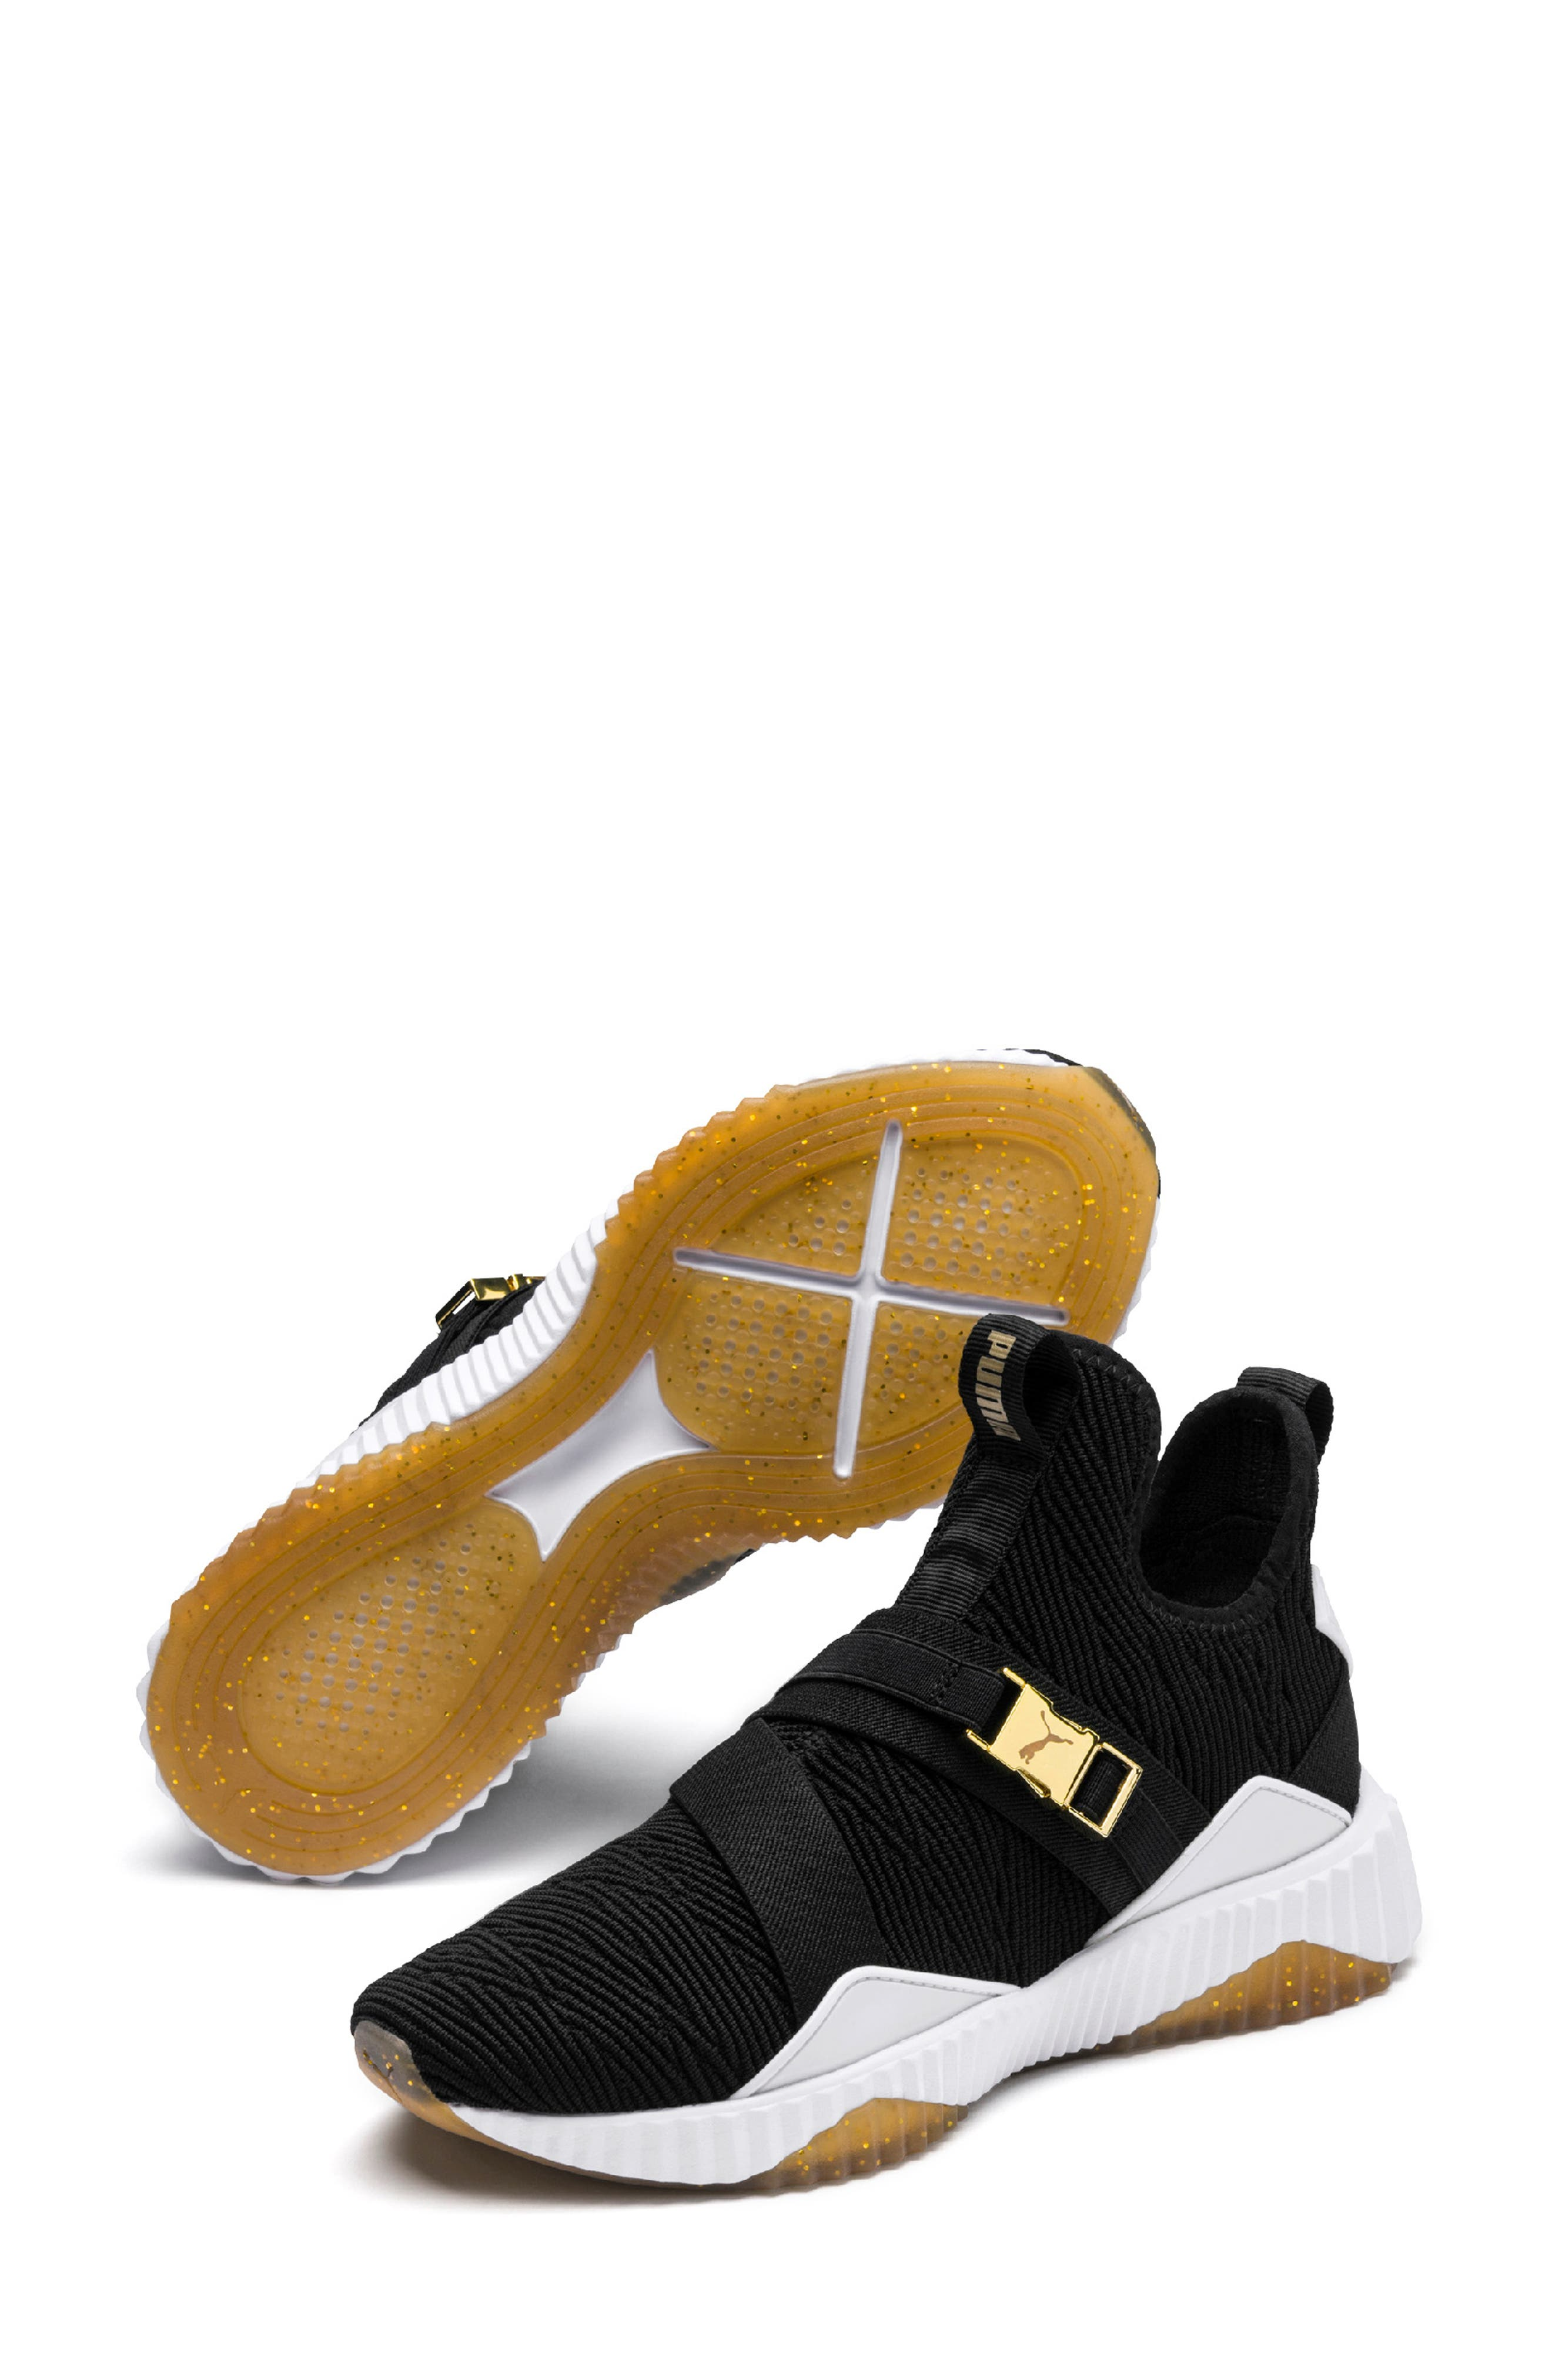 Sneakers amp; amp; Shoes Puma Nordstrom Puma Shoes 0SnqUXq